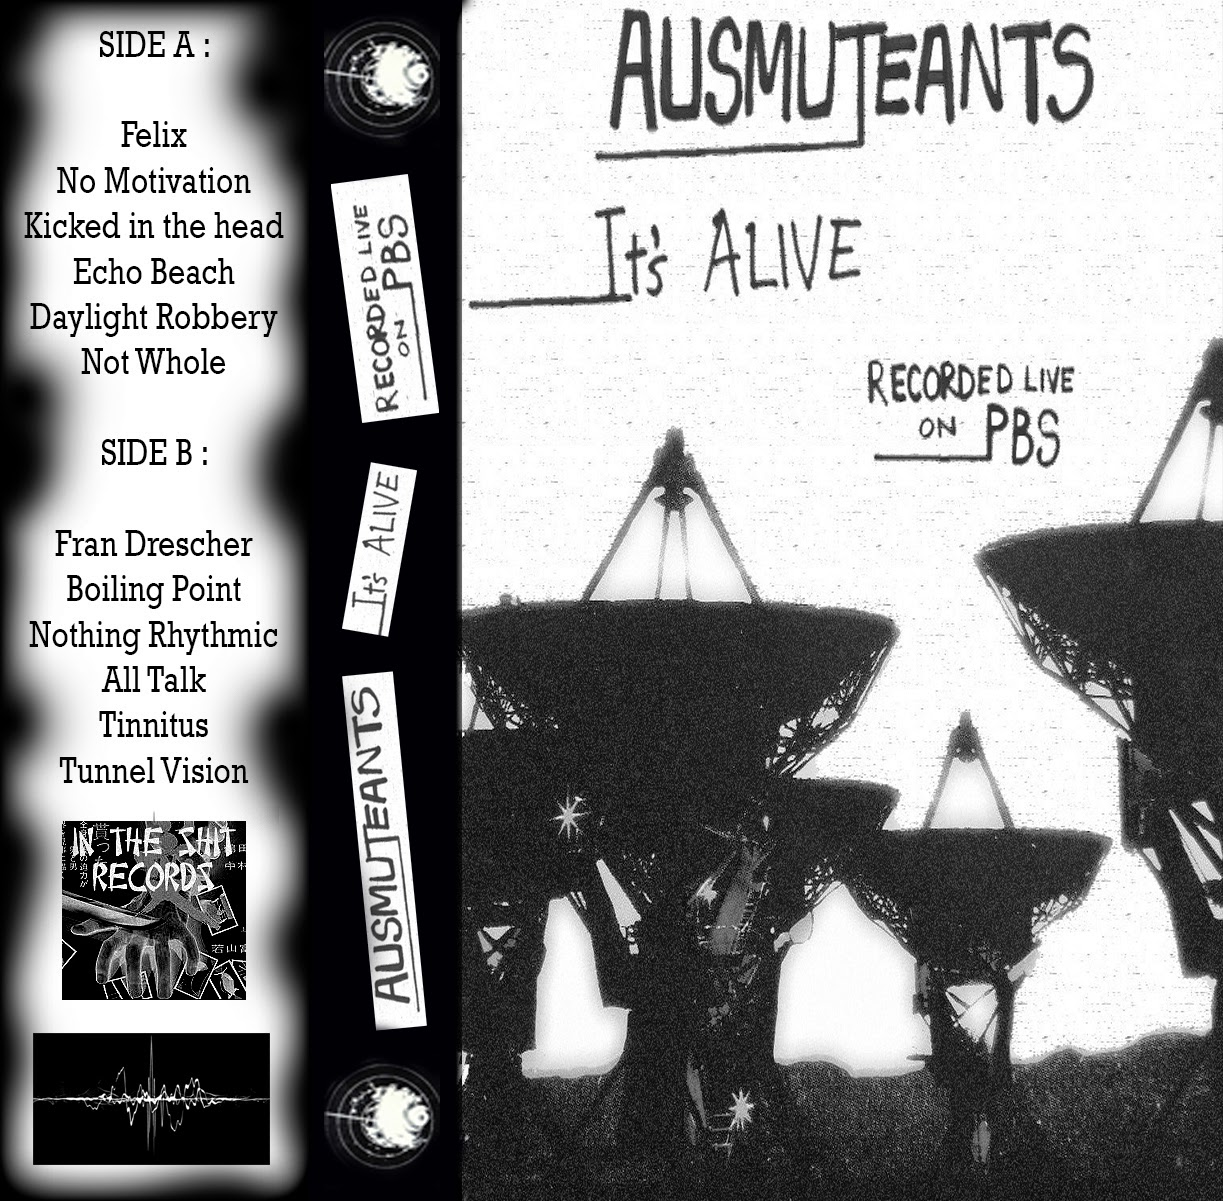 Ausmuteants - It's Alive Recorded Live On PBS cassette (In The S